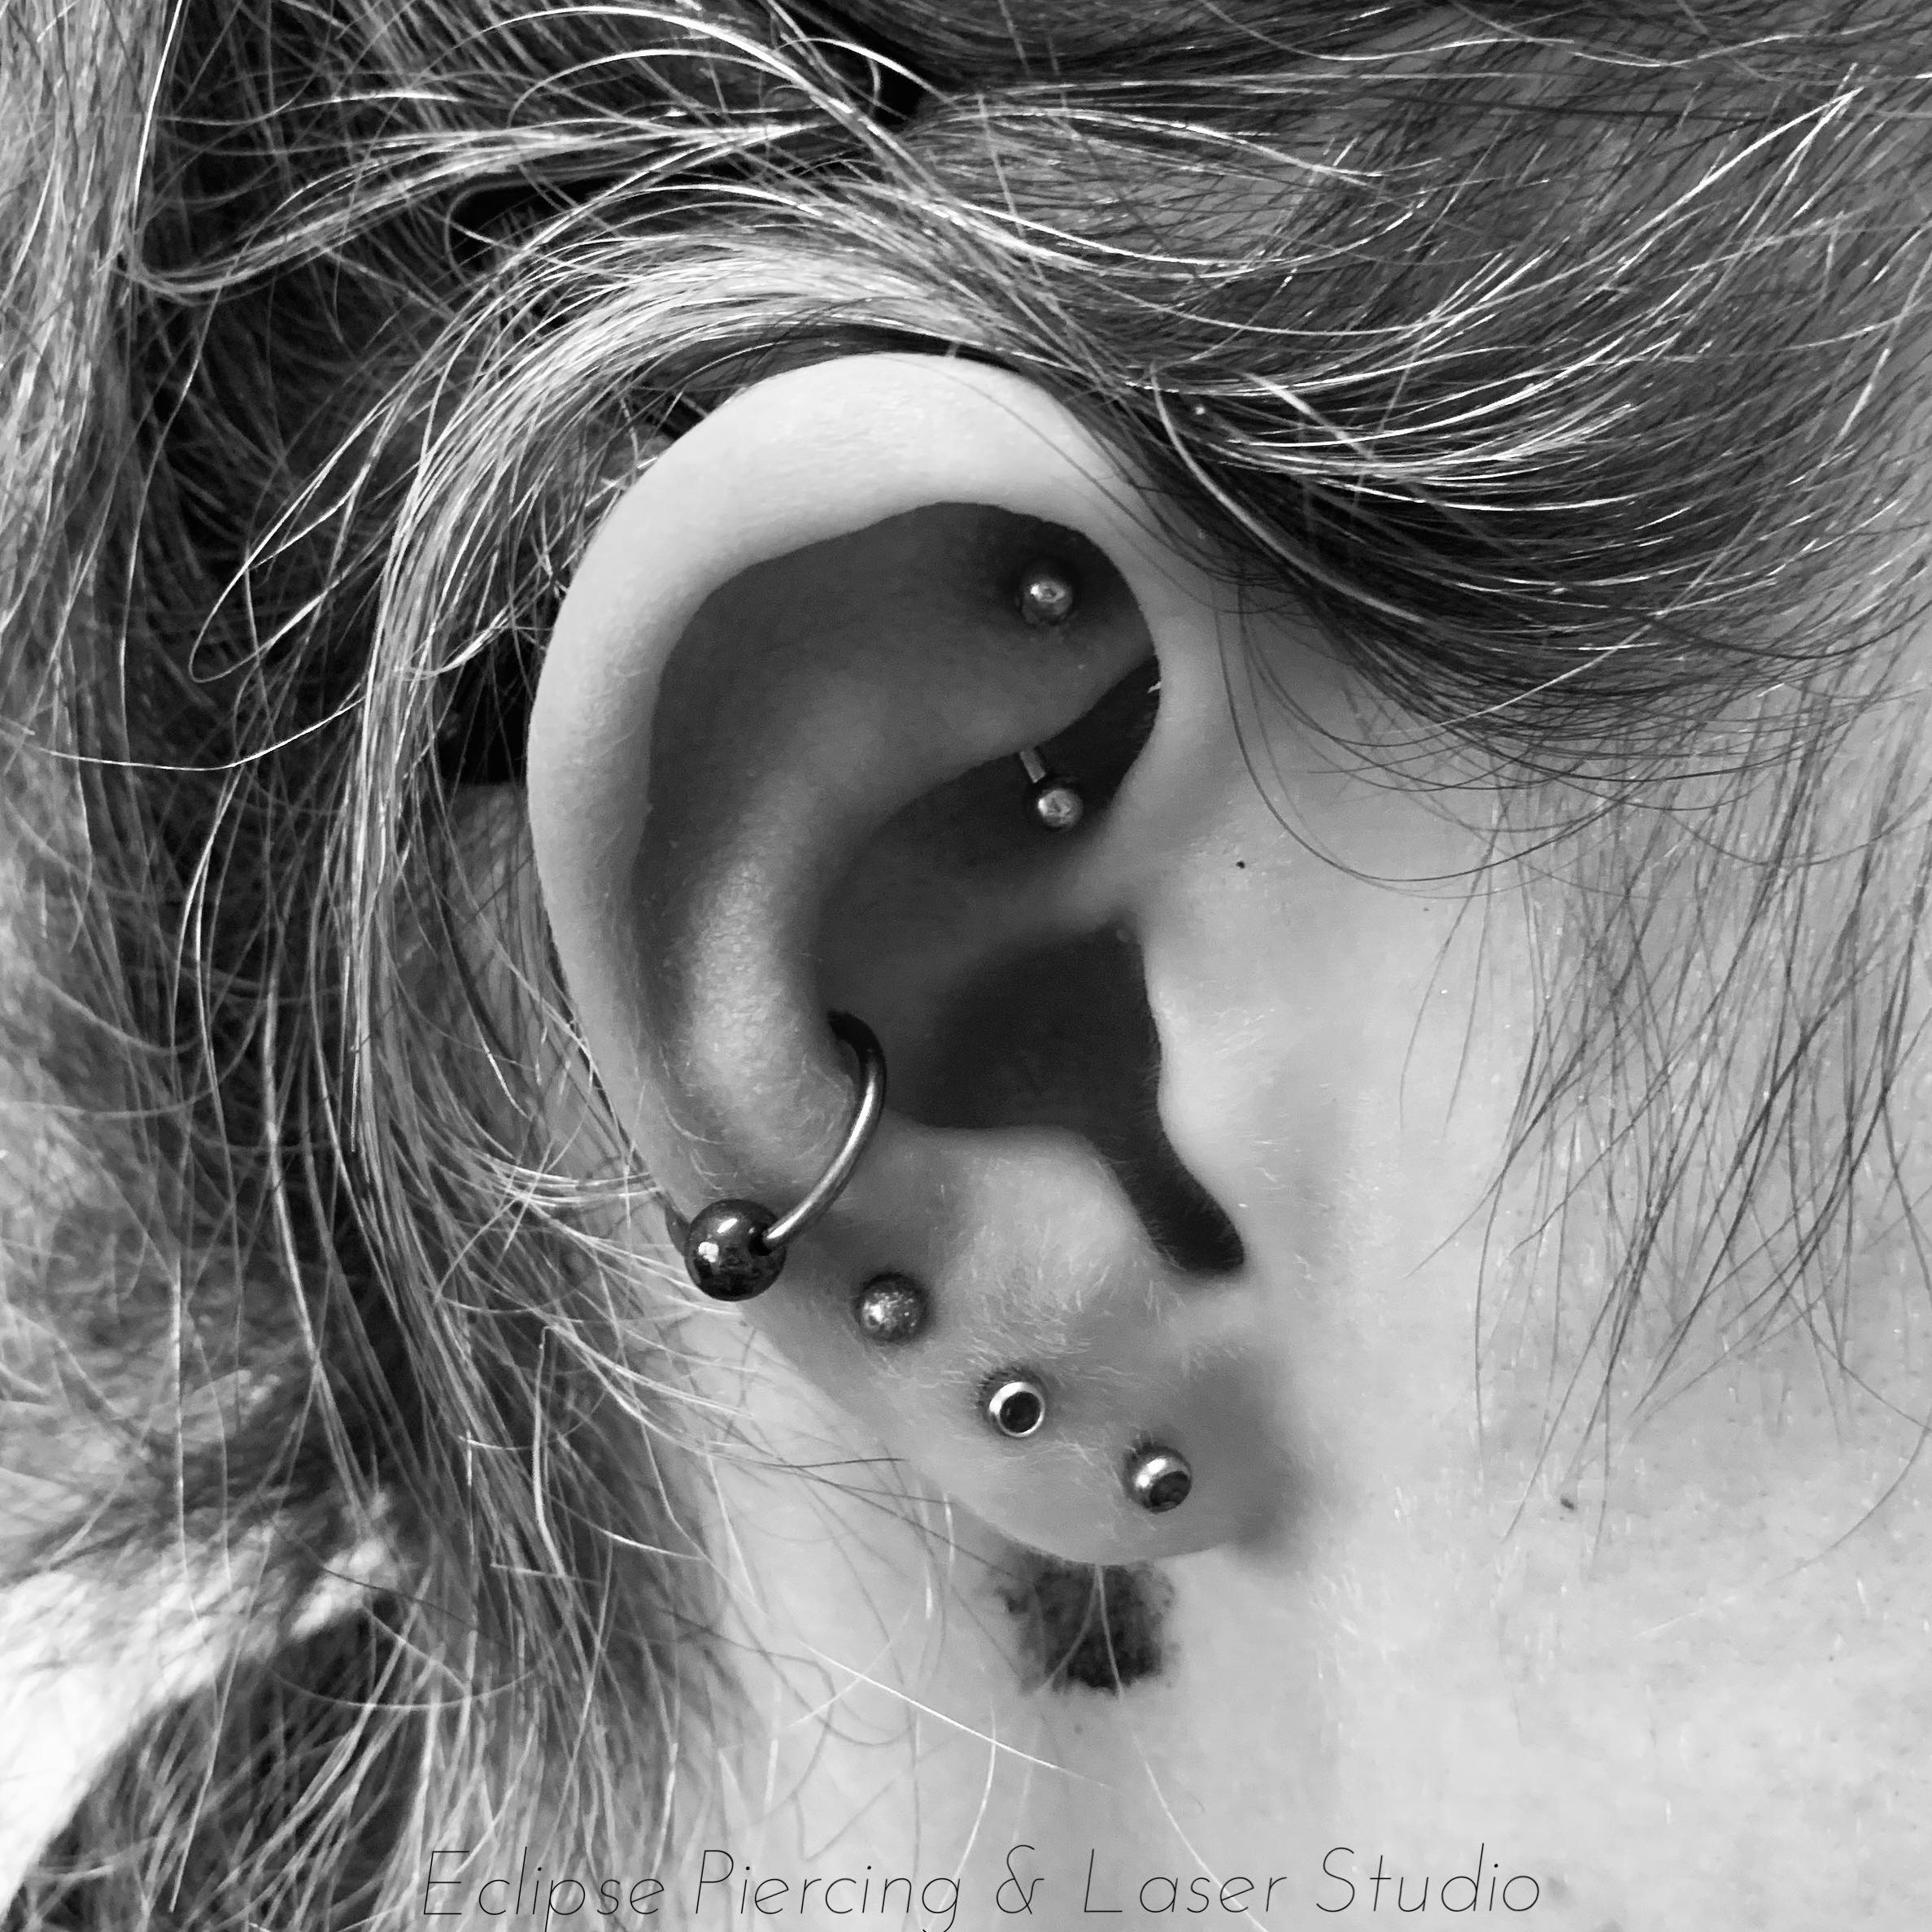 Conch piercing with a ball closure ring